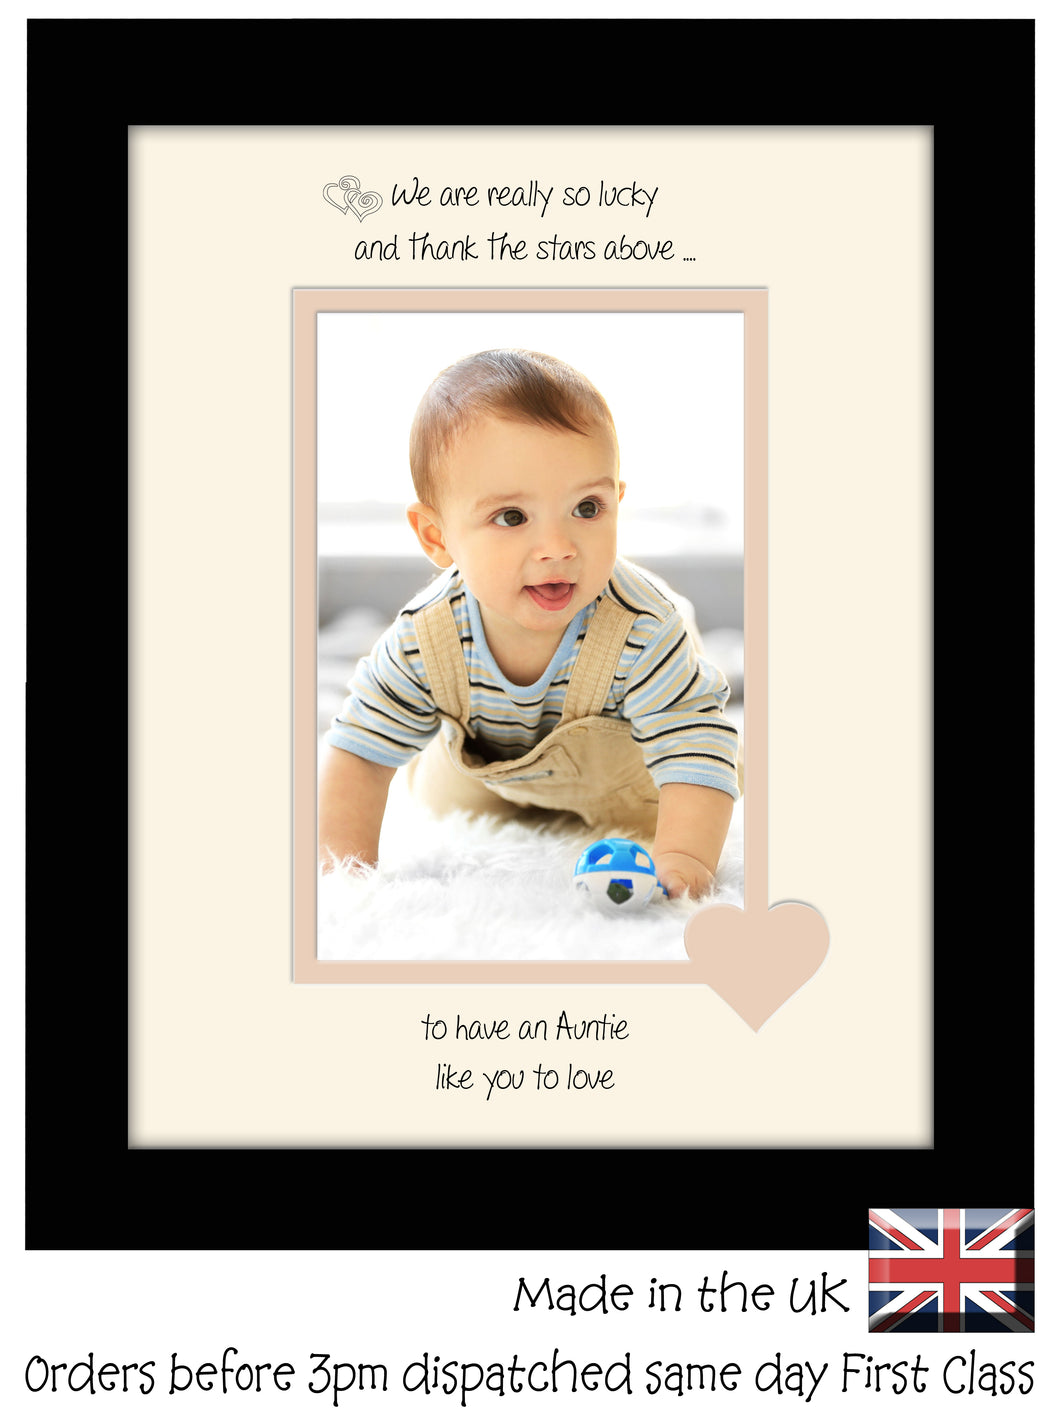 Auntie Photo Frame - We Thank the stars Auntie Portrait photo frame 6